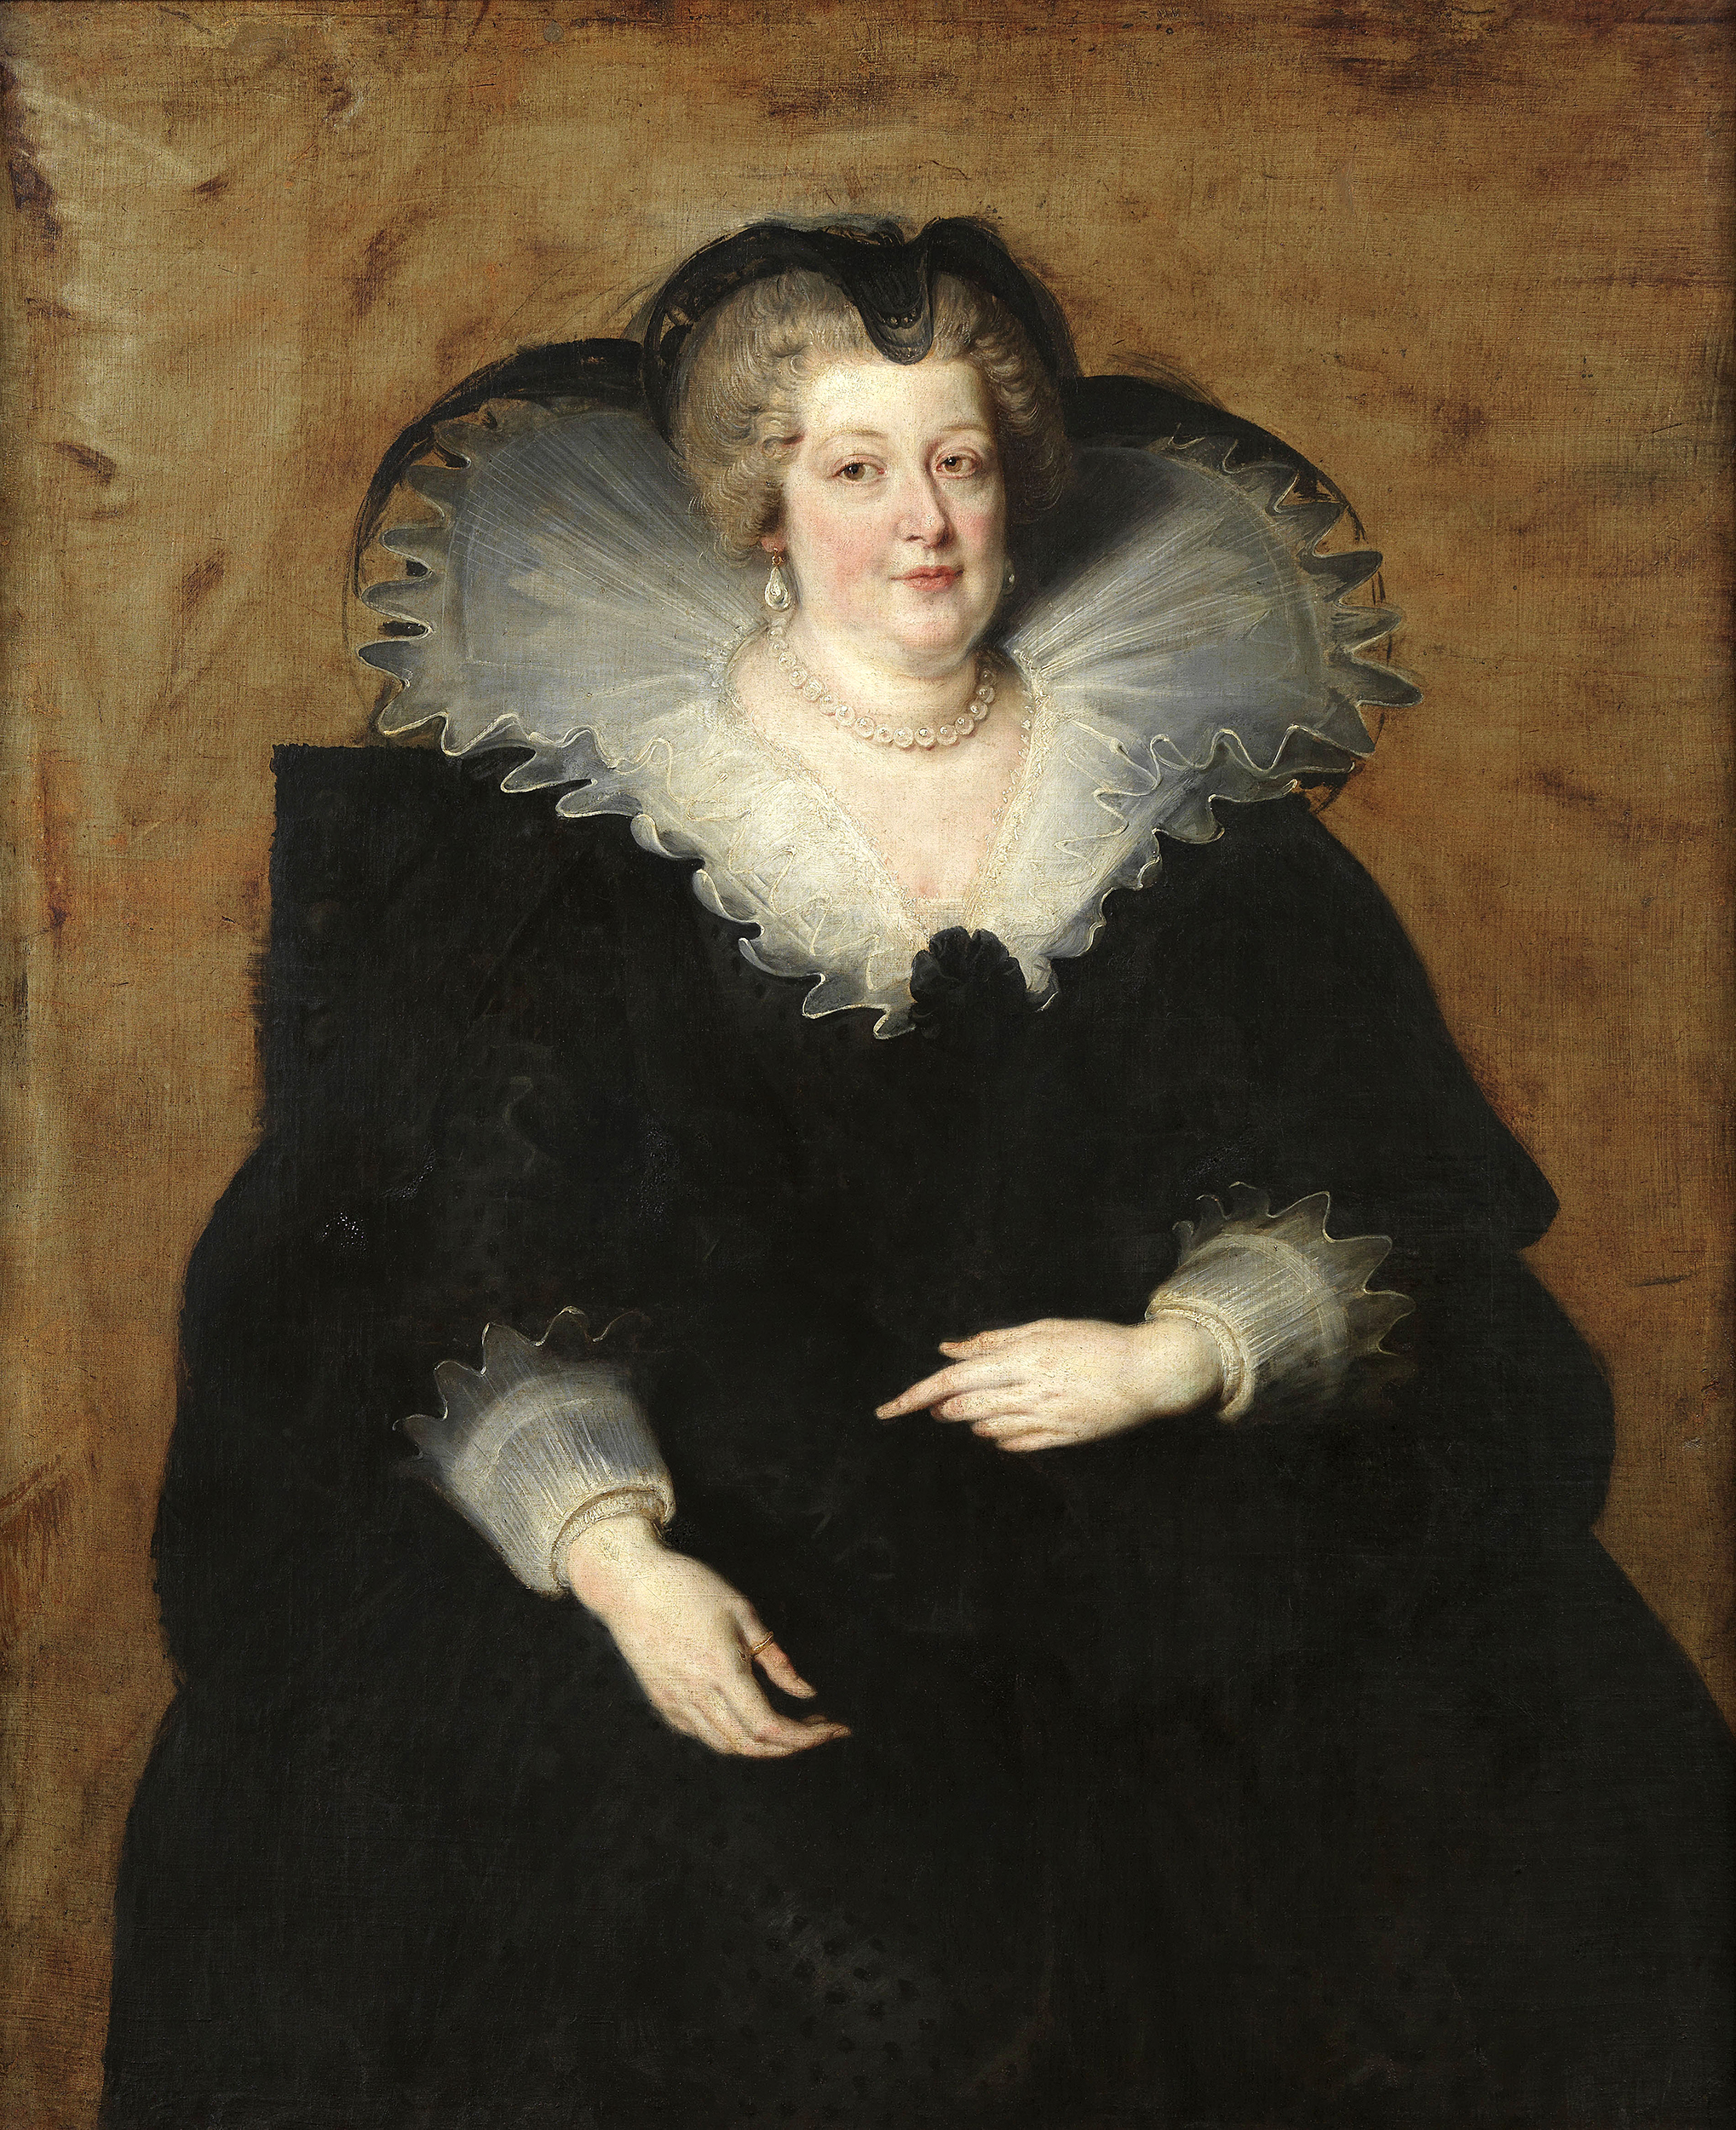 Portrait of Marie de' Medici (1575-1642), Queen consort of France and Navarre (1600-1610), Regent of the Kingdom of France (1610-1614), Head of the Royal Council (1614-1617), 1622 | Portraits of Kings